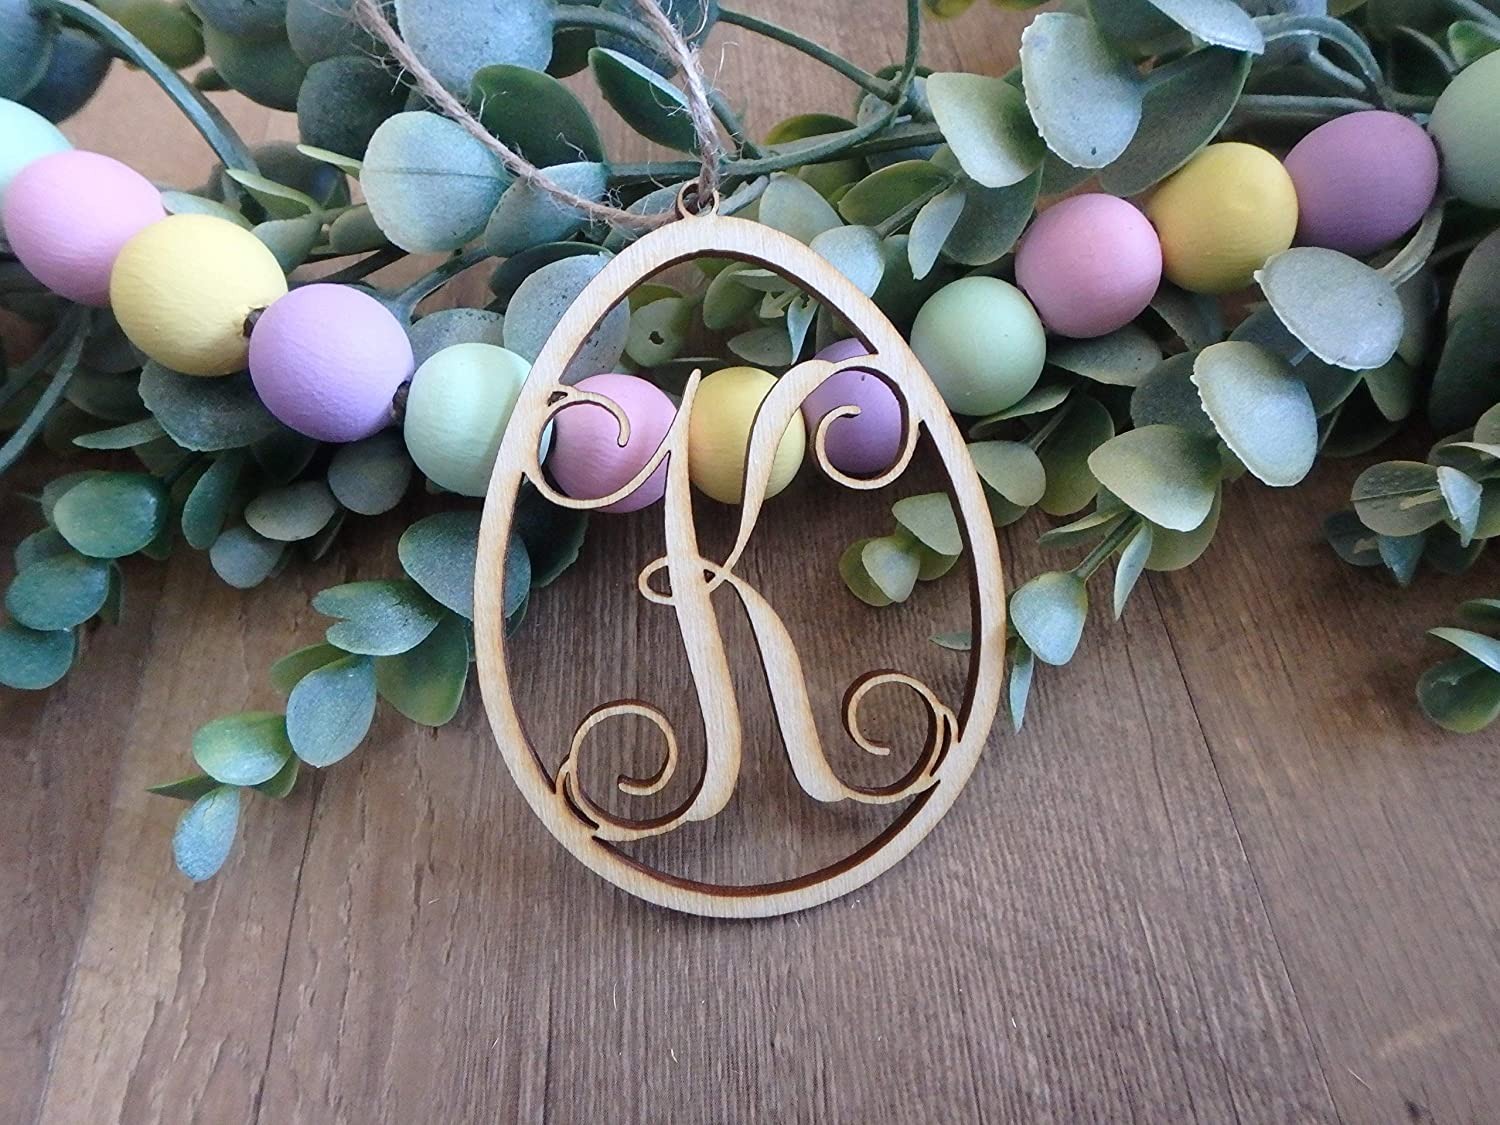 Personalized Basket Tags Wooden Easter Gift Tags Carrot Tag Customized Children Name Tag Children Easter Carrots 3D Name  Wood Gift Tags